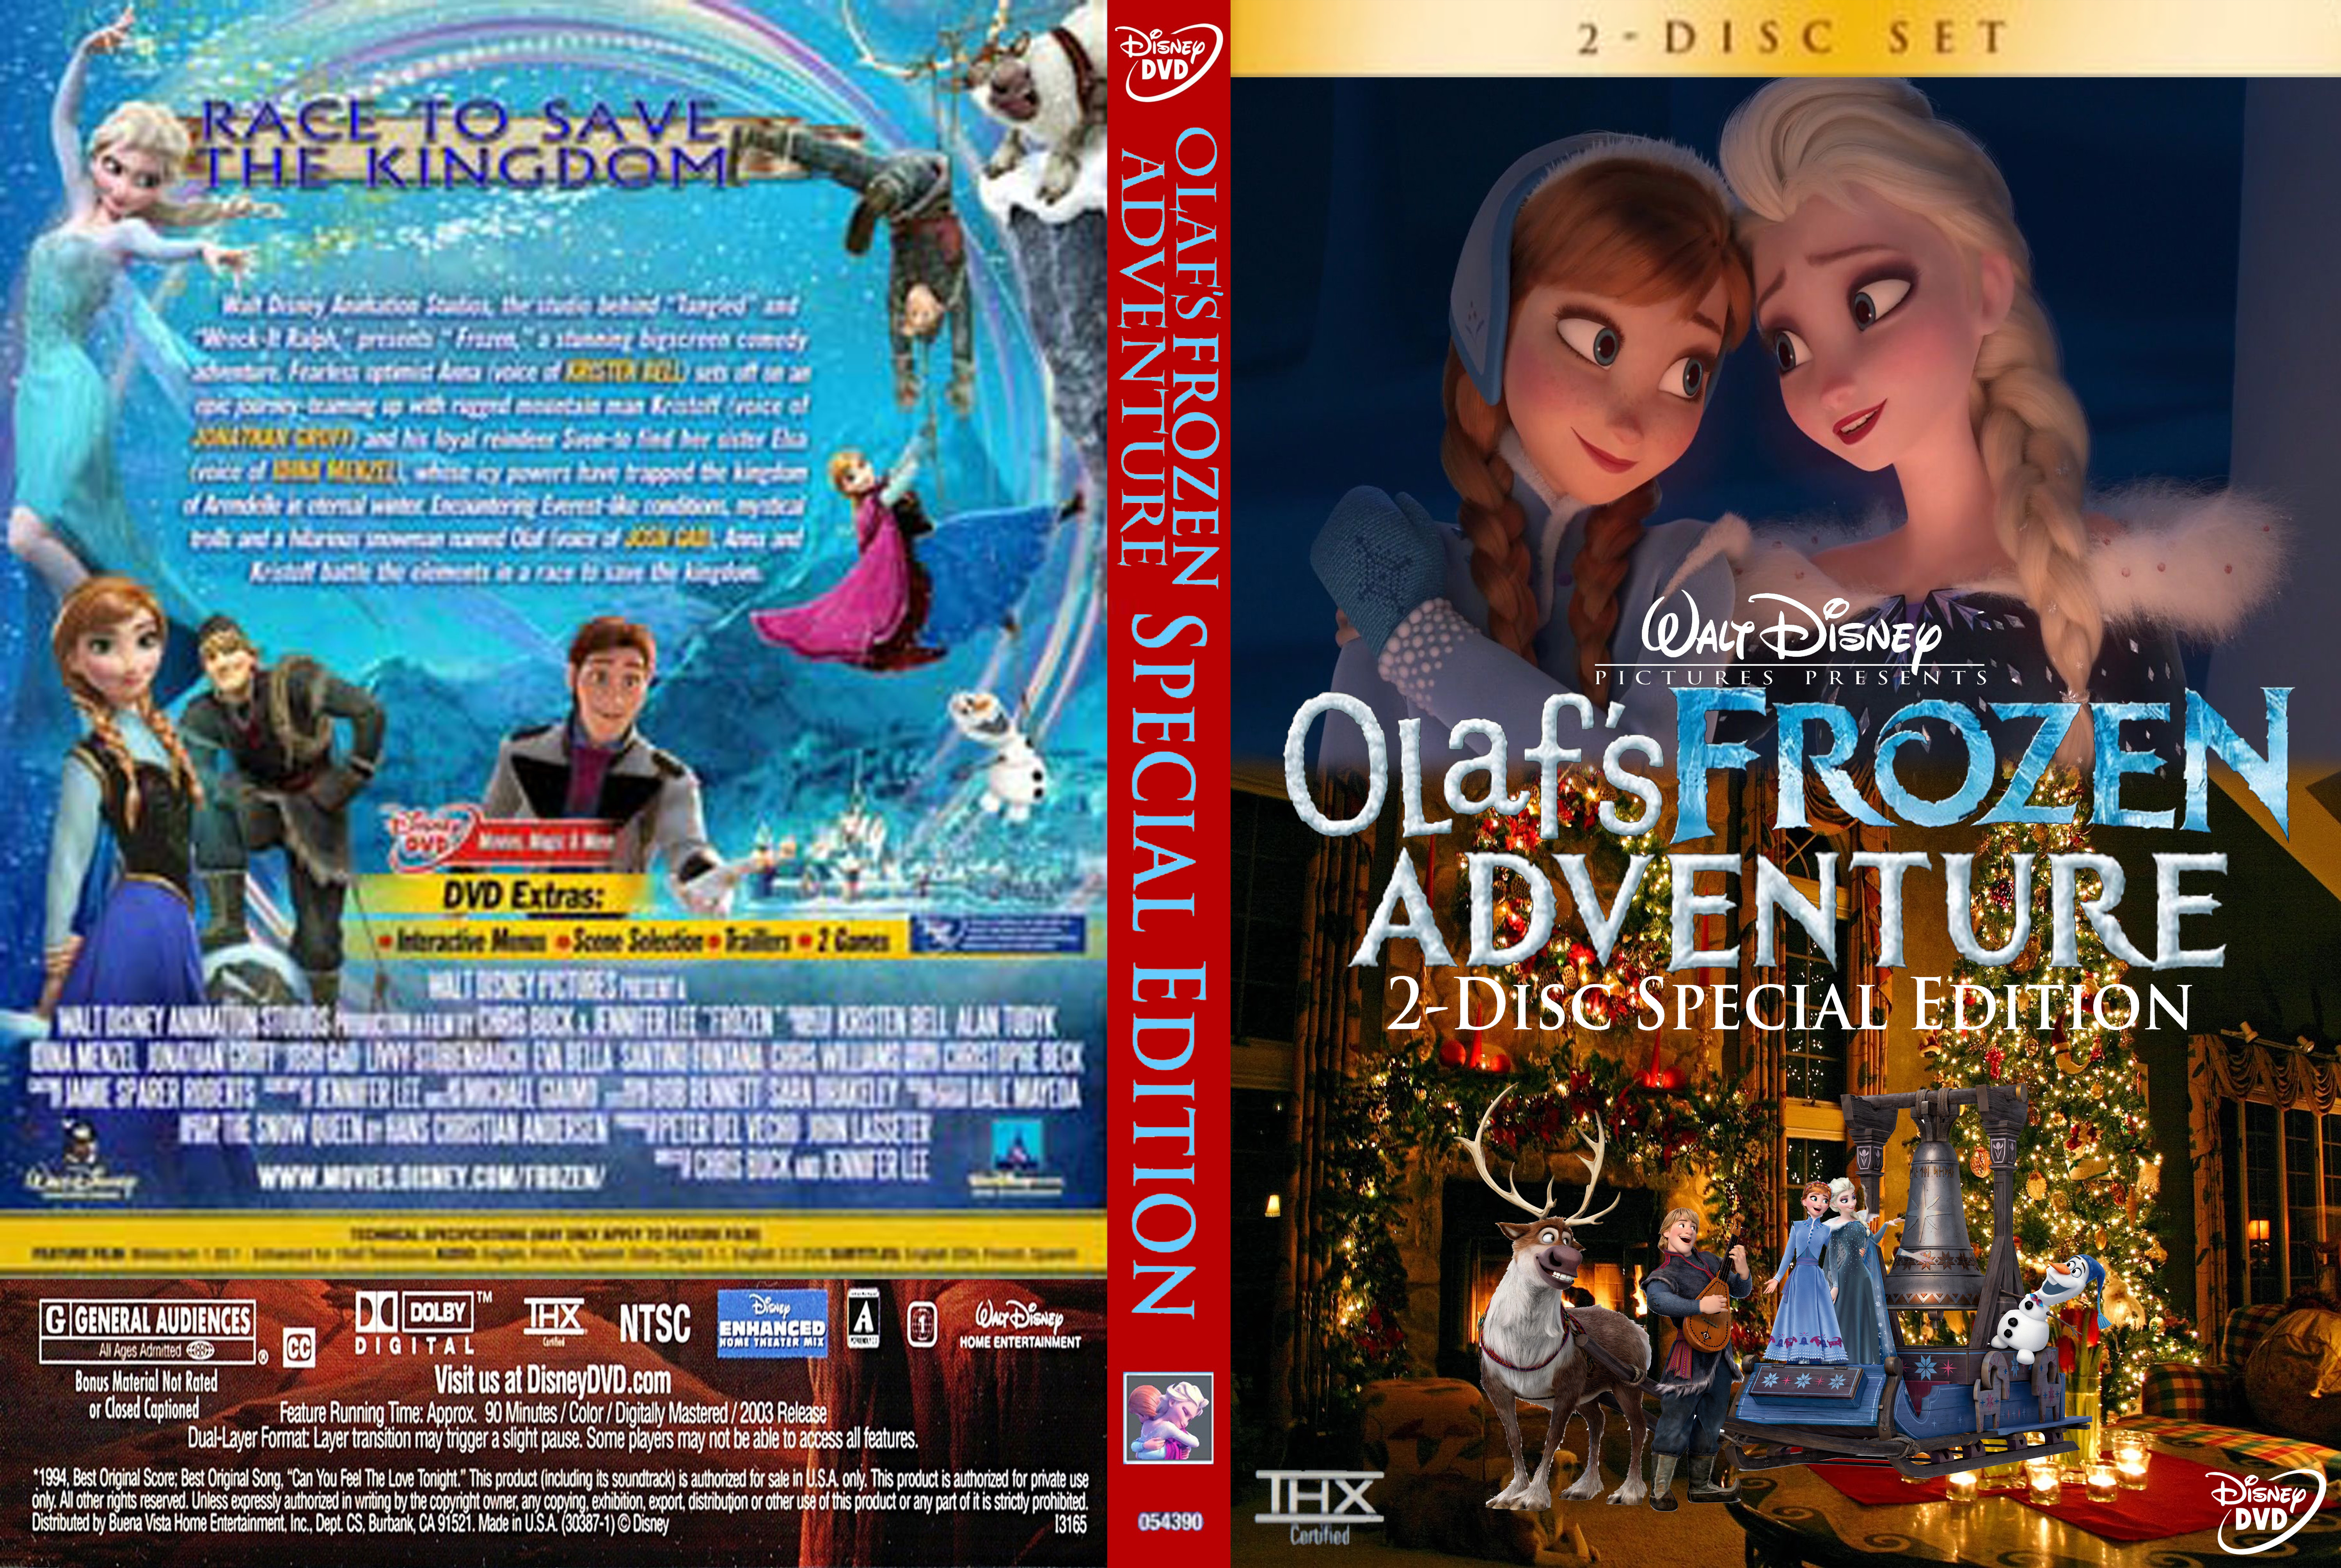 Walt Disney's Olaf's Frozen Adventure 2-Disc Special Edition (2004) DVD